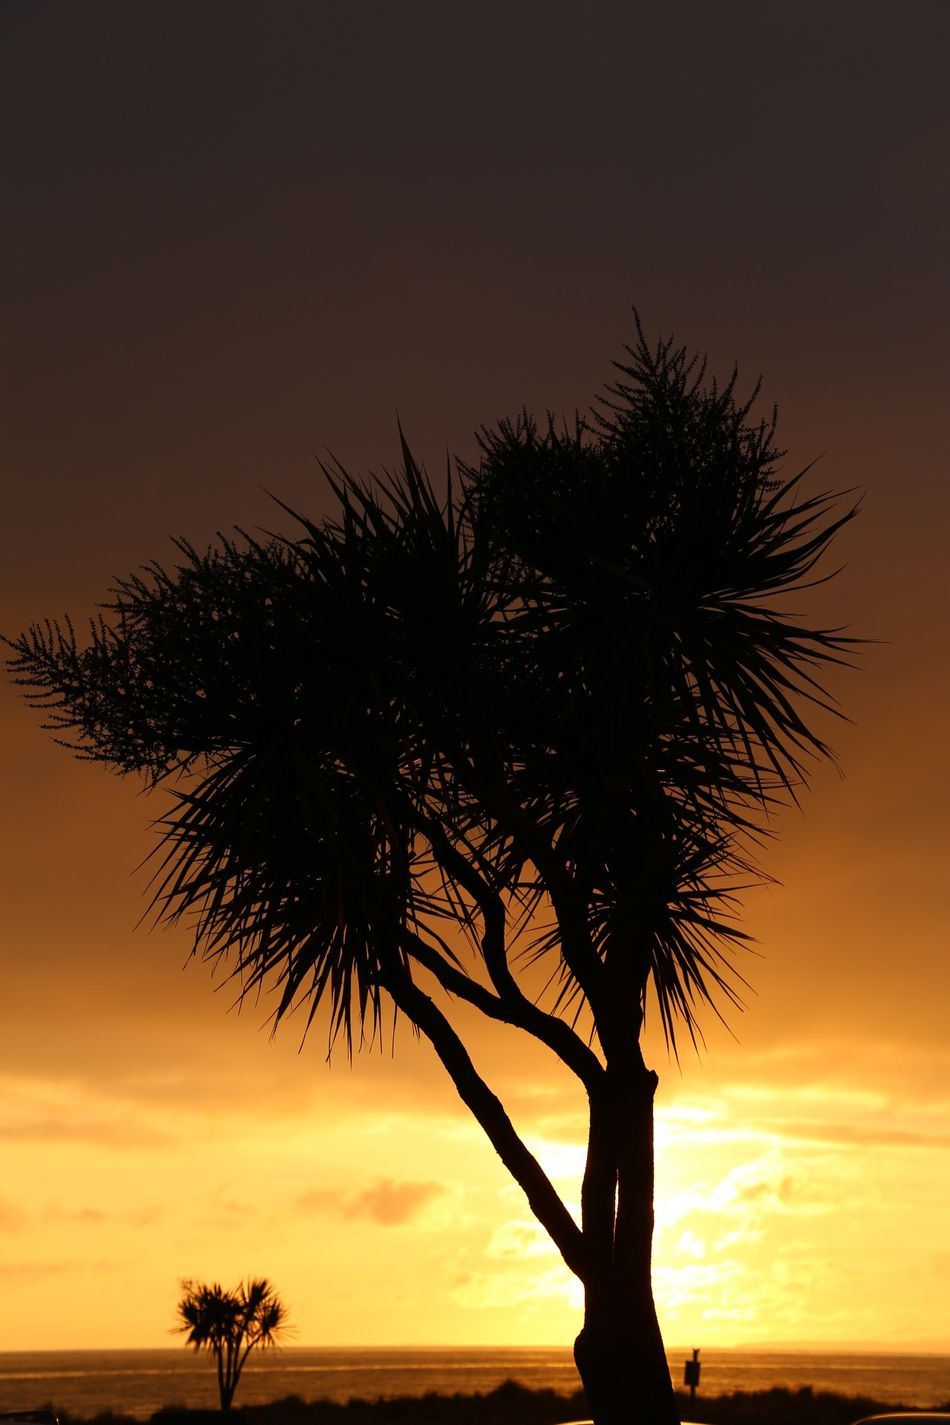 gone too soon Sunset Tree Sea Landscape Nature Tranquility Silhouette No People Outdoors Water Scenics Single Tree Sky Day Silhouettes Of Trees Silhouette Burning Sunset Beach Life Sunset✨trees✨ Sunset Silhouettes Sunsetlover